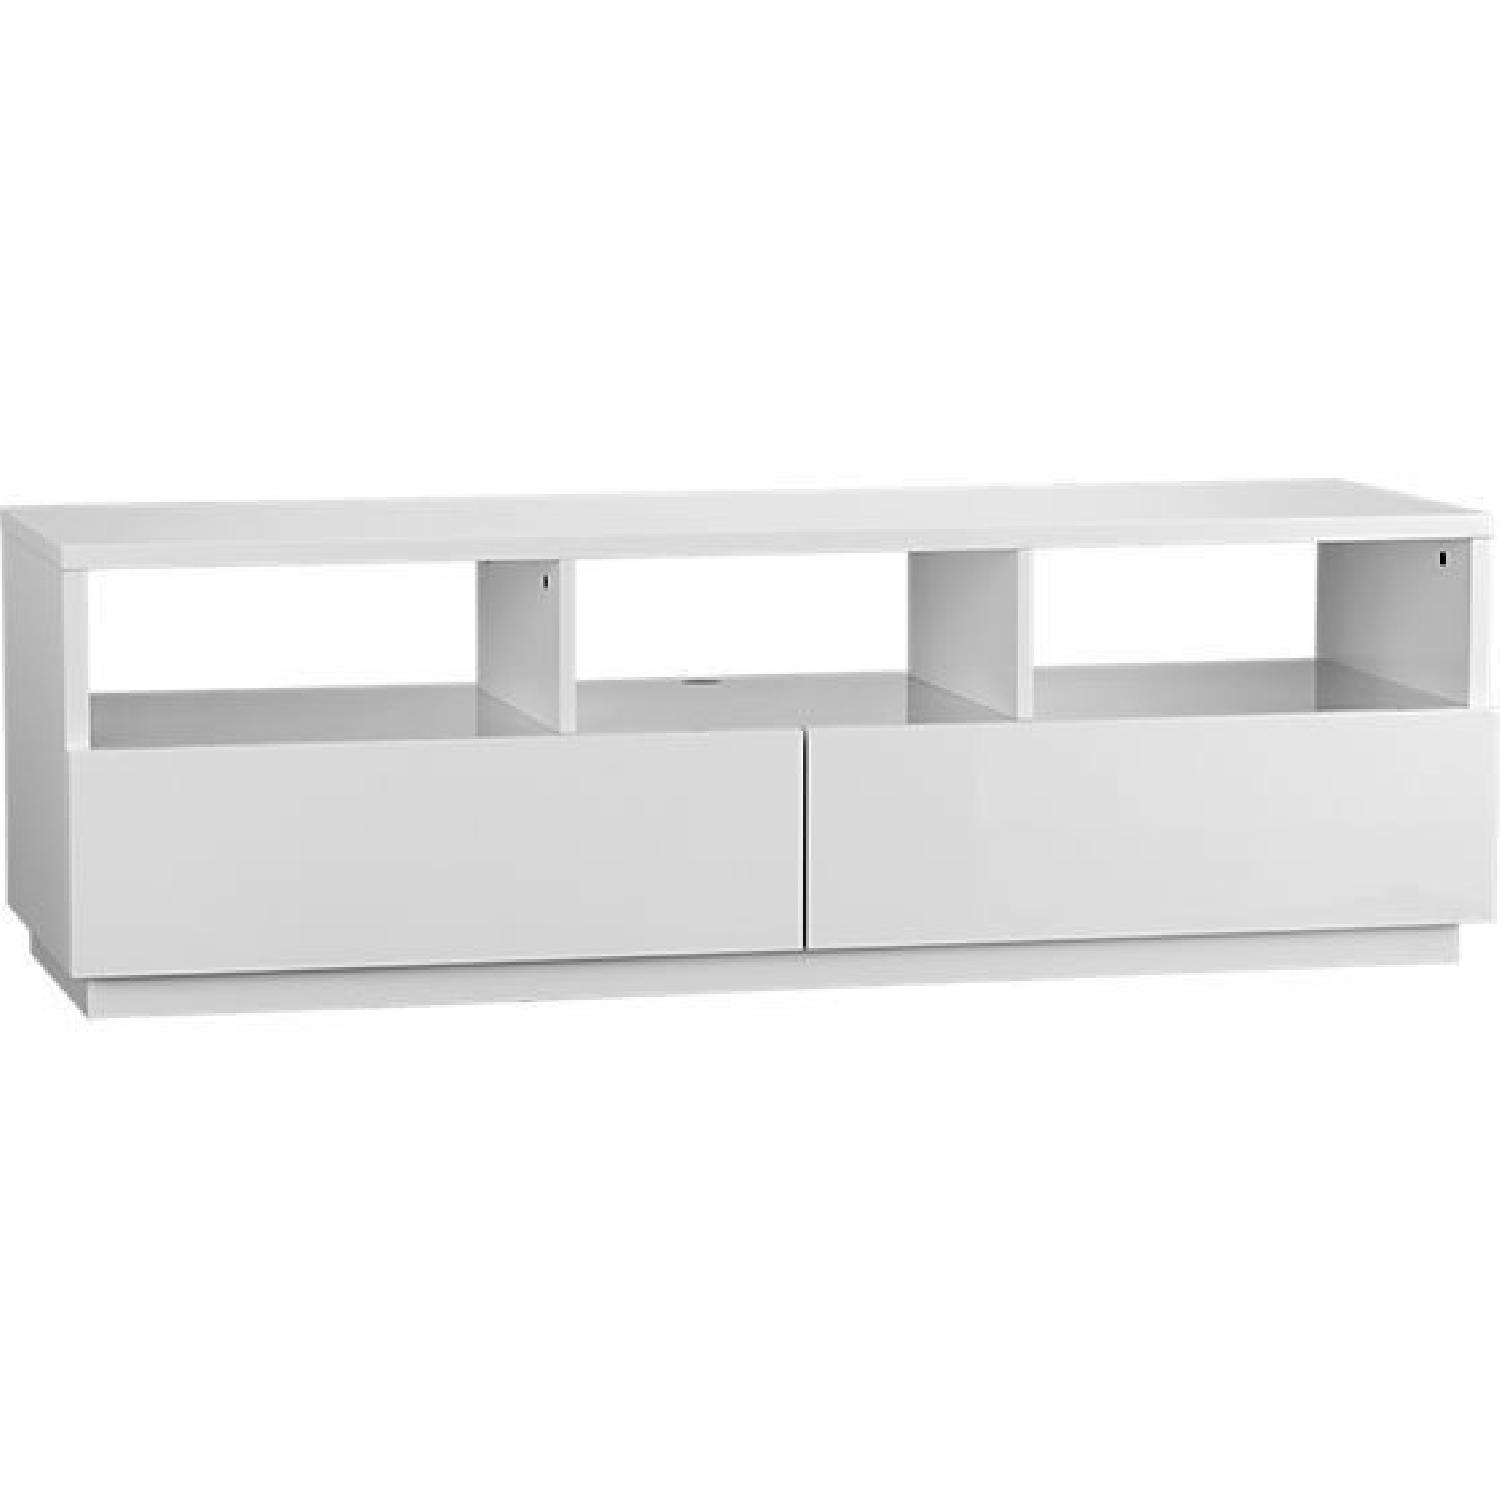 CB2 High Gloss White Modern TV Stand w/ 2 Drawers - image-0